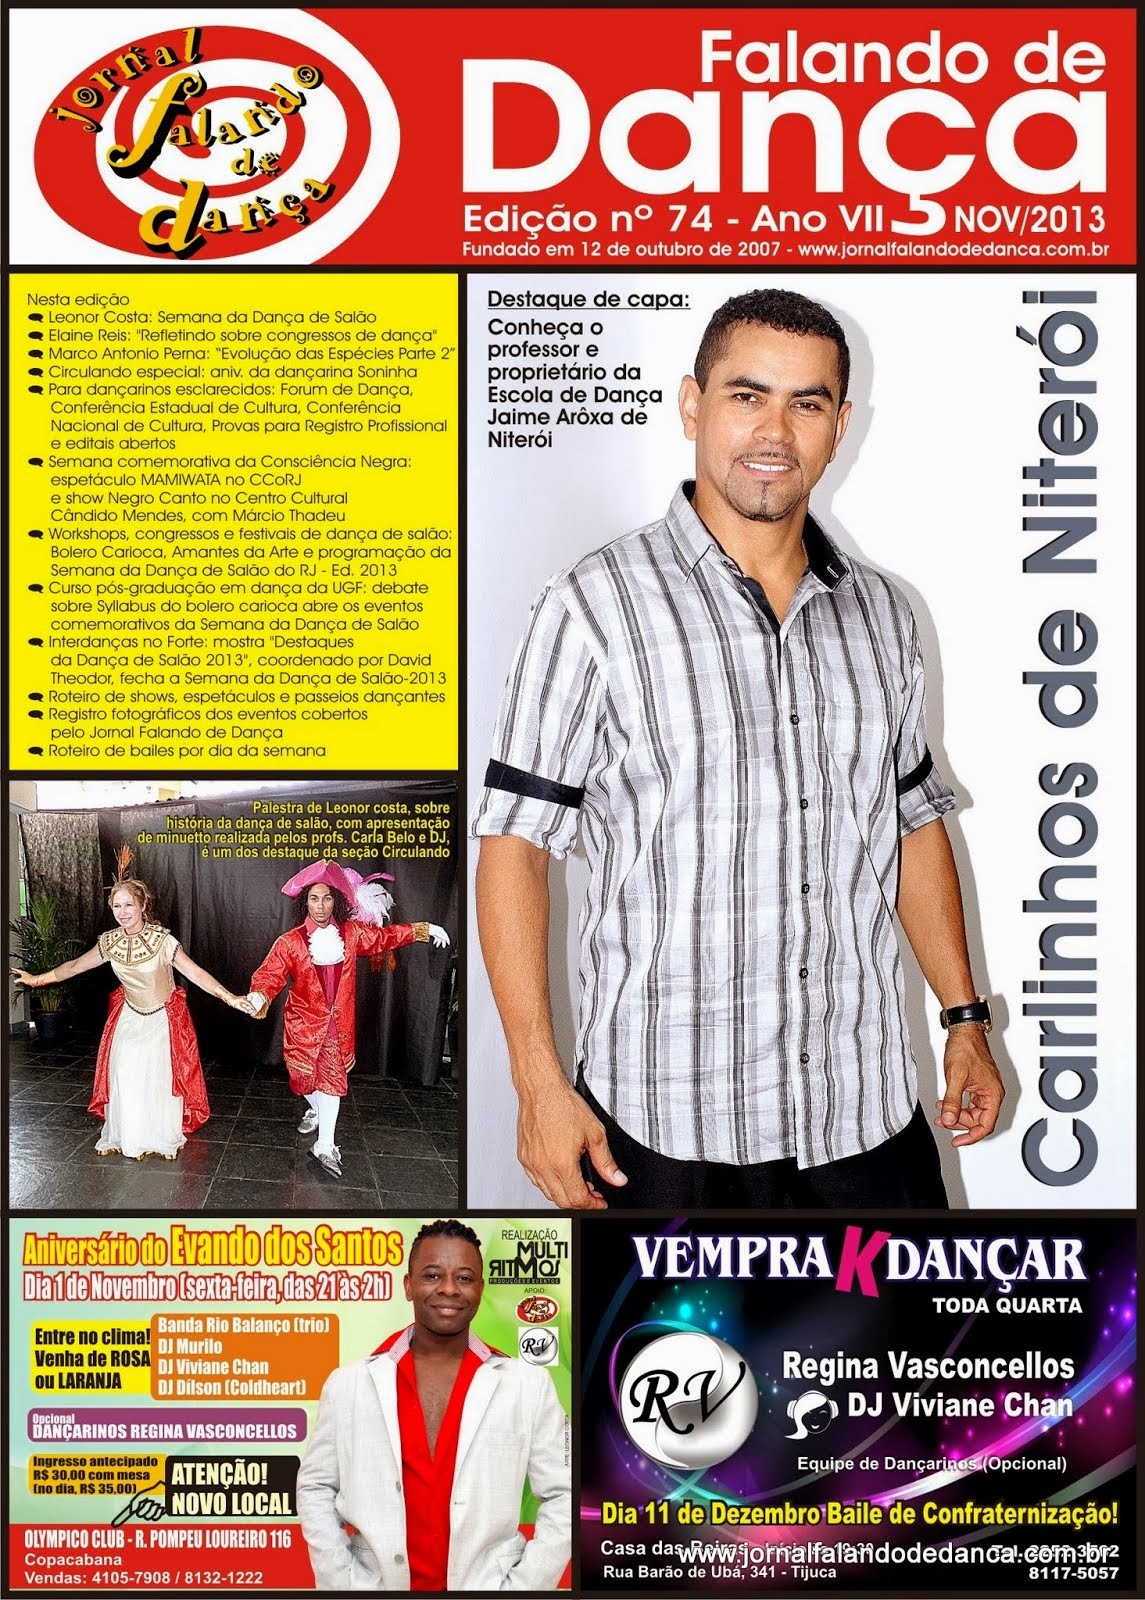 Leia on line a ed. 74 (Novembro/2013) do JFD